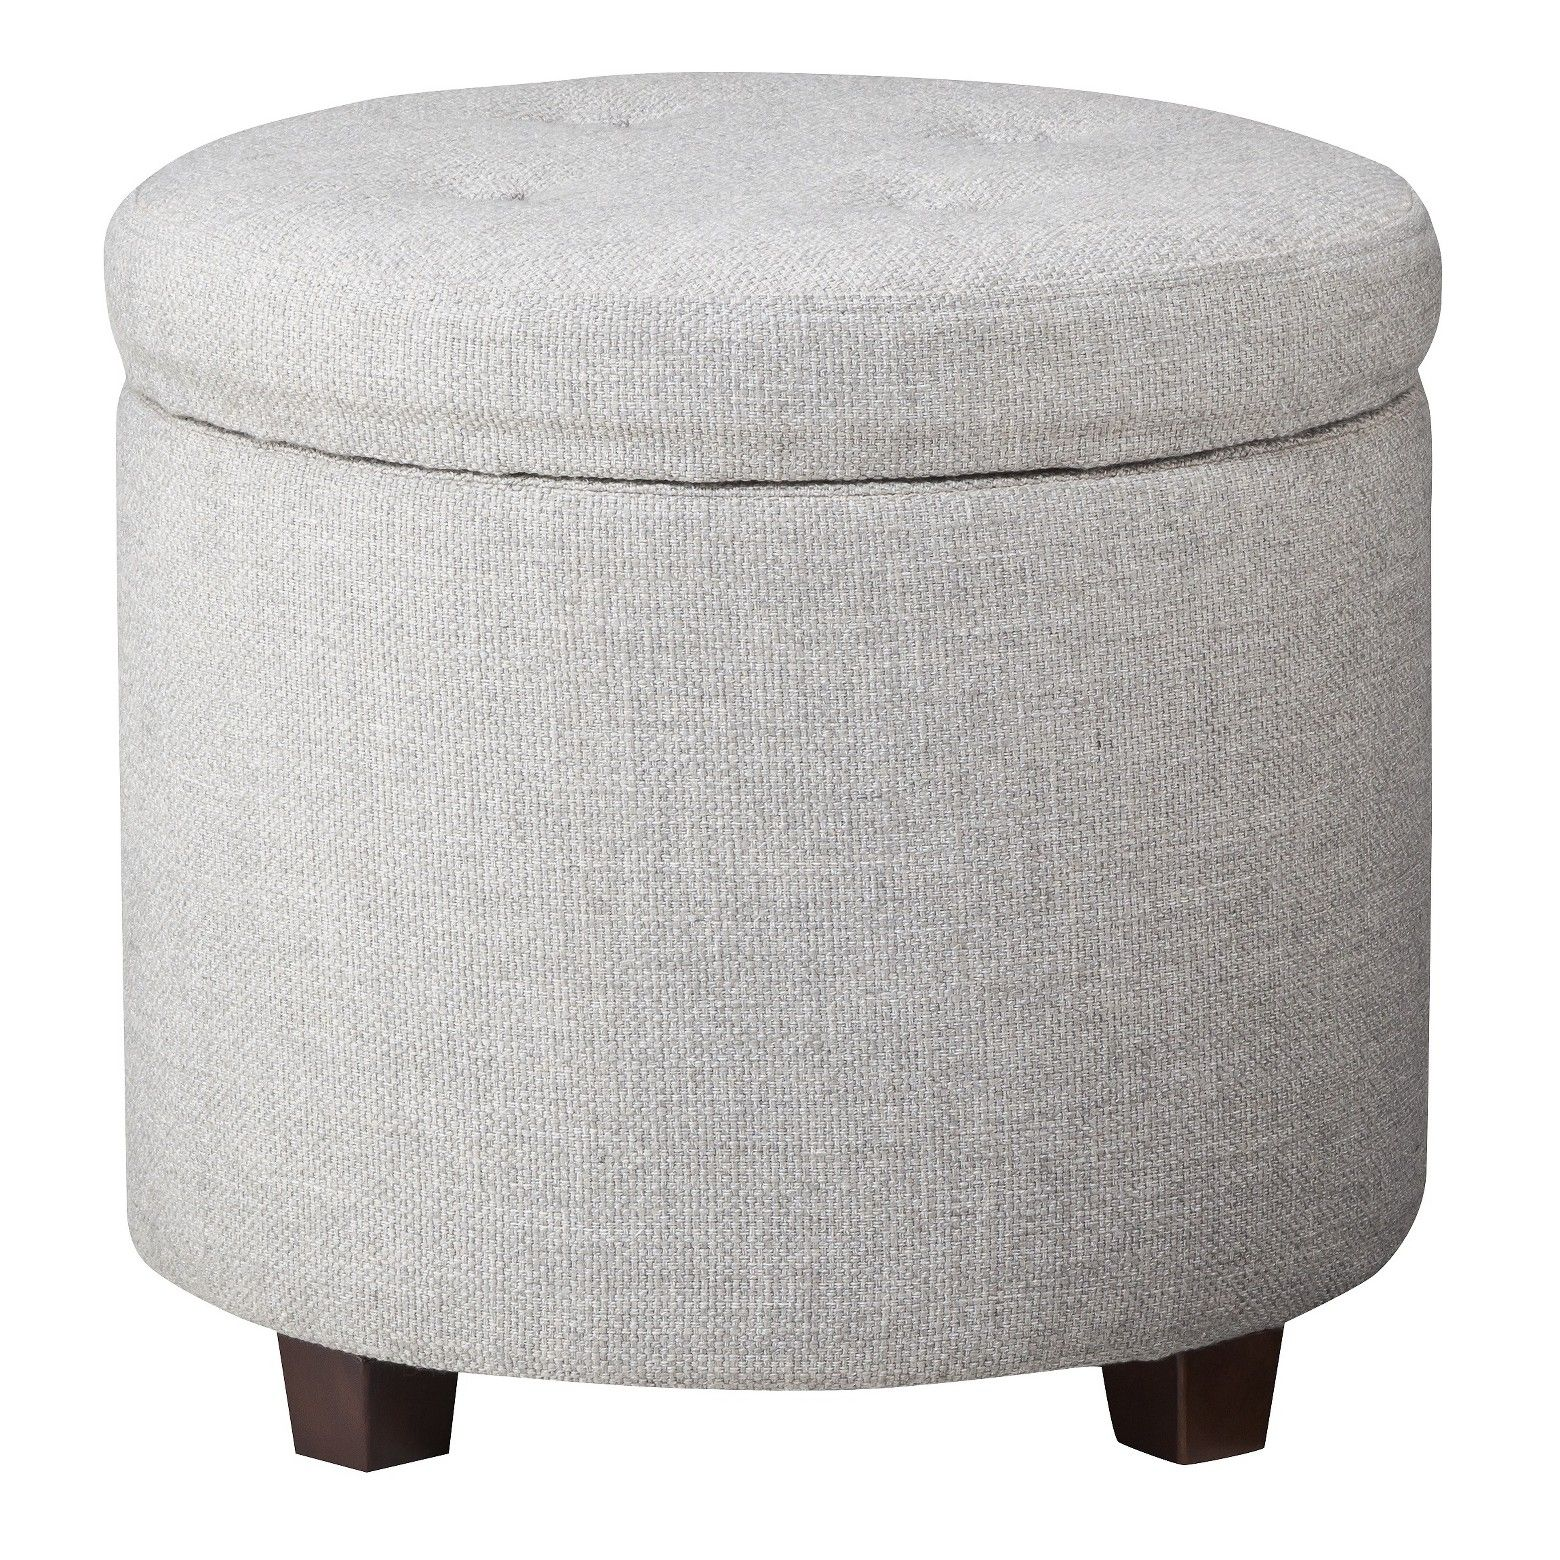 buy popular c6e18 a7d71 Round Tufted Storage Ottoman Gray Textured Weave - Threshold ...